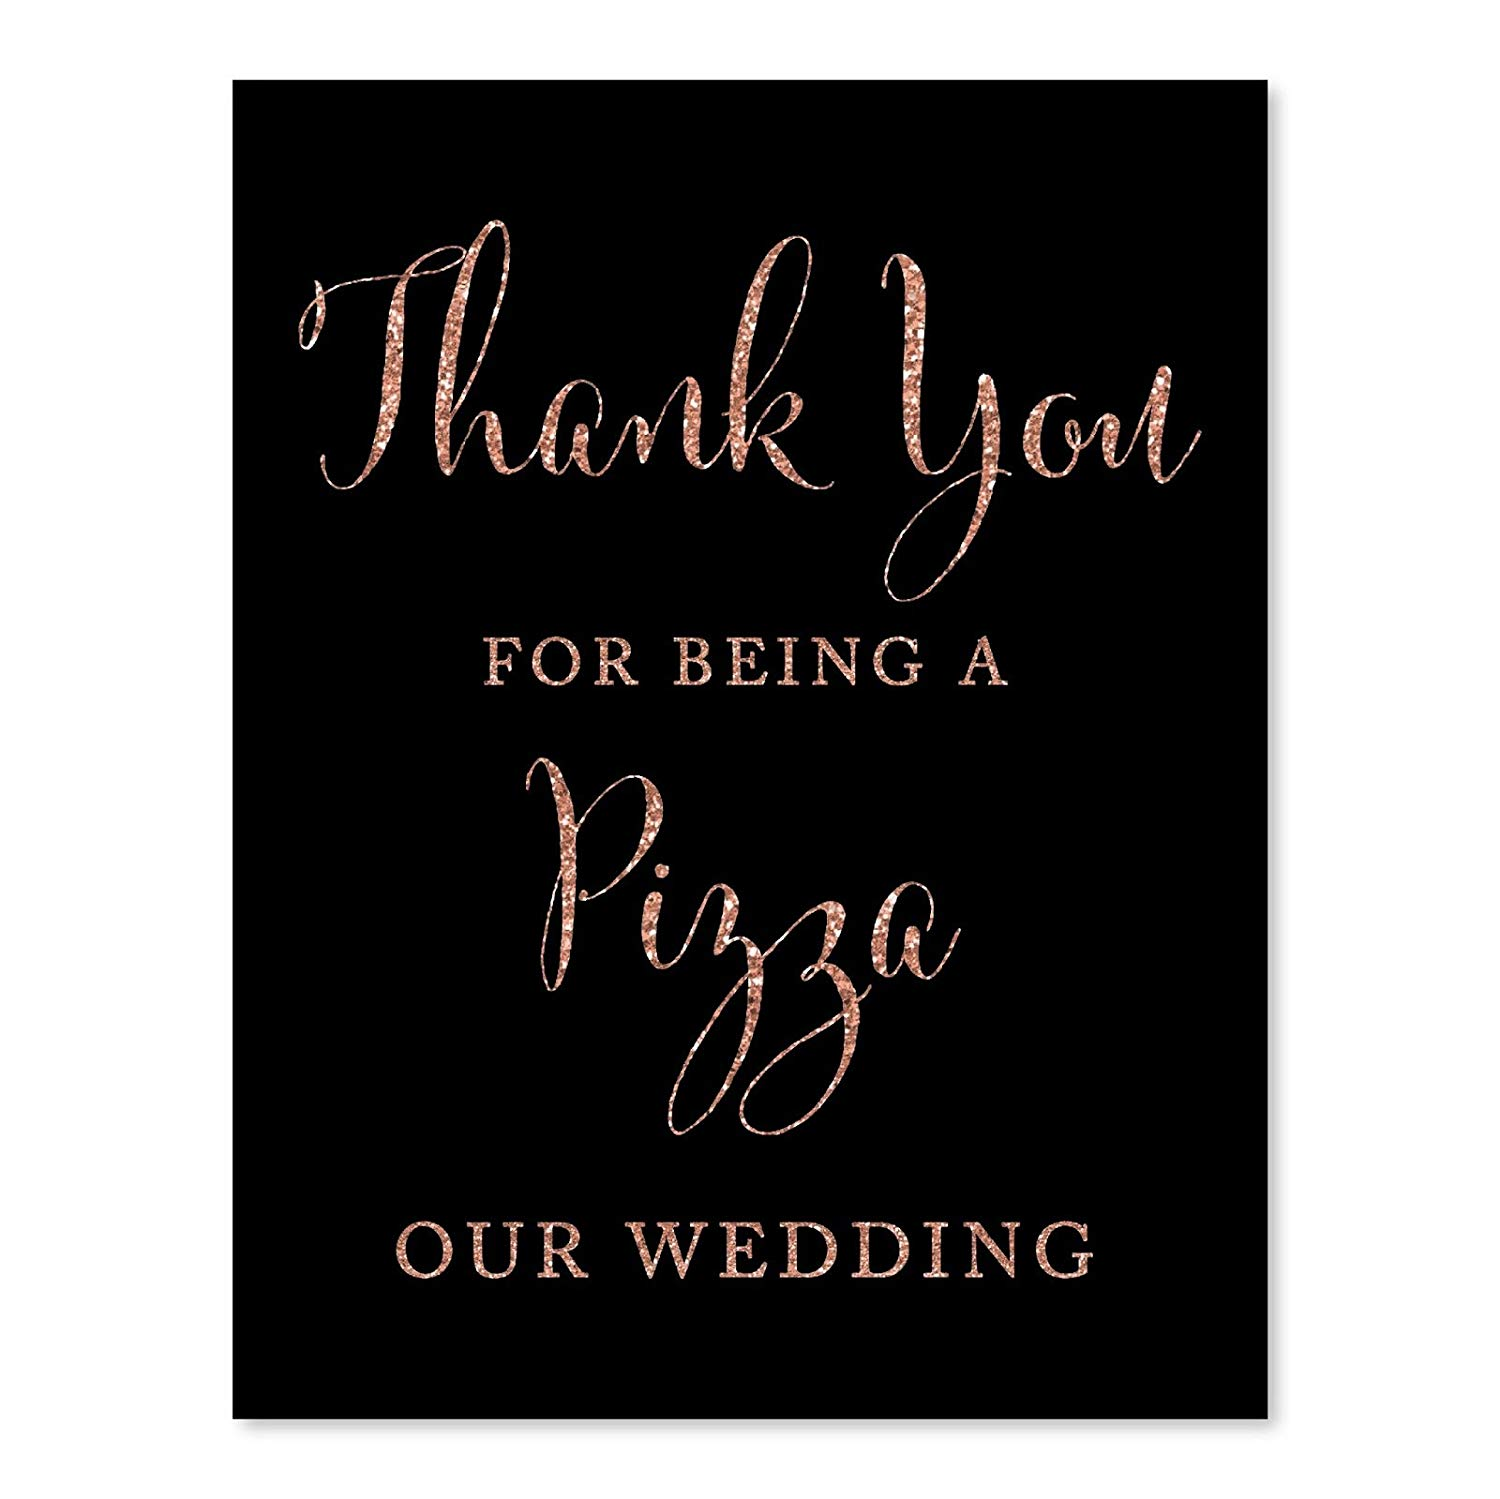 Andaz Press Wedding Party Signs, Faux Rose Gold Glitter on Black, 8.5x11-inch, Thank You for Being a Pizza Our Wedding, 1-Pack, Colored Party Supplies Decorations